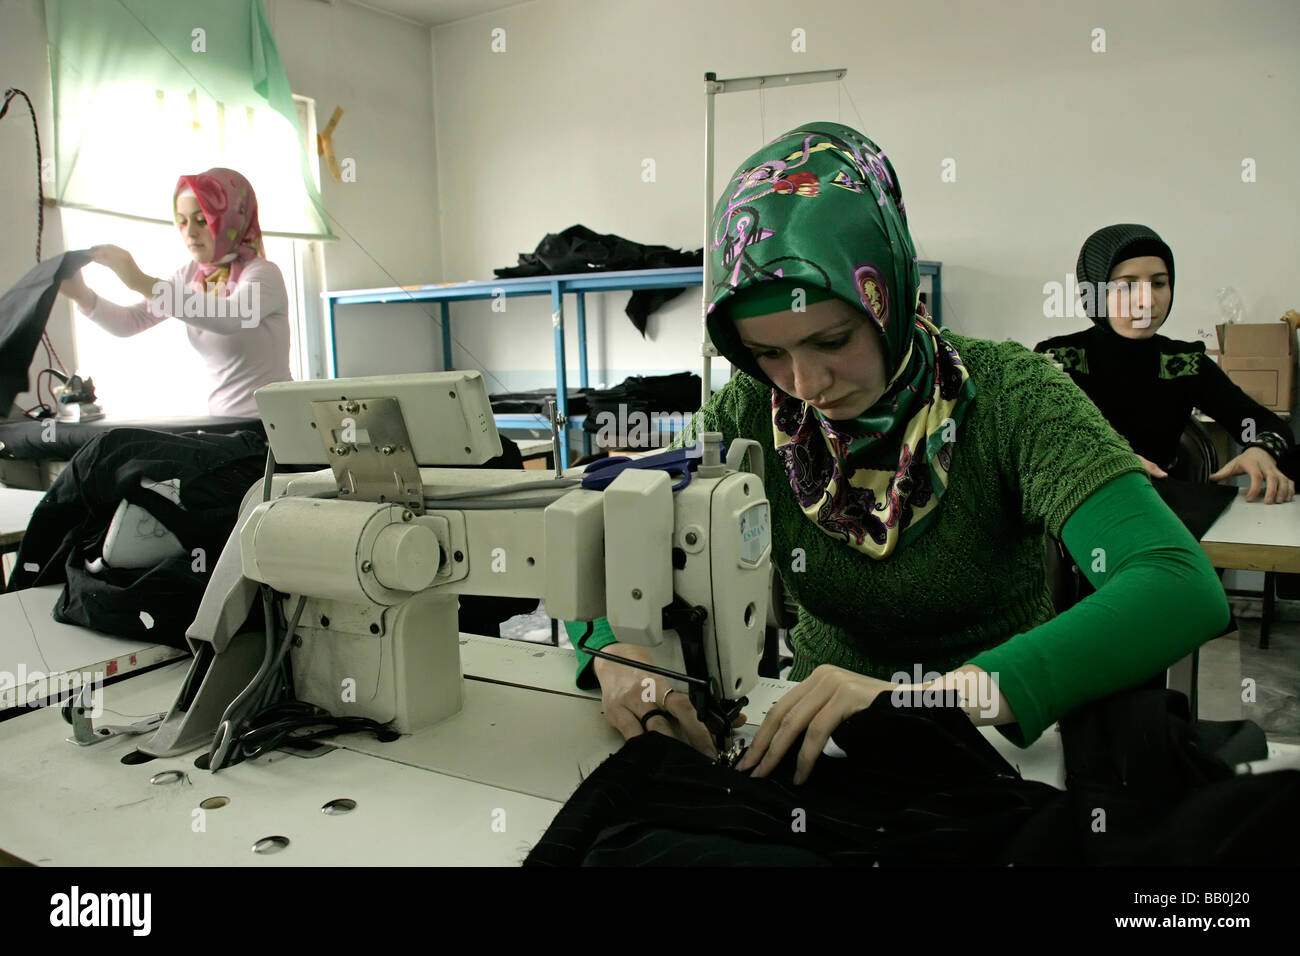 Textiles workers at a sweatshop in Pendik, Istanbul, Turkey - Stock Image